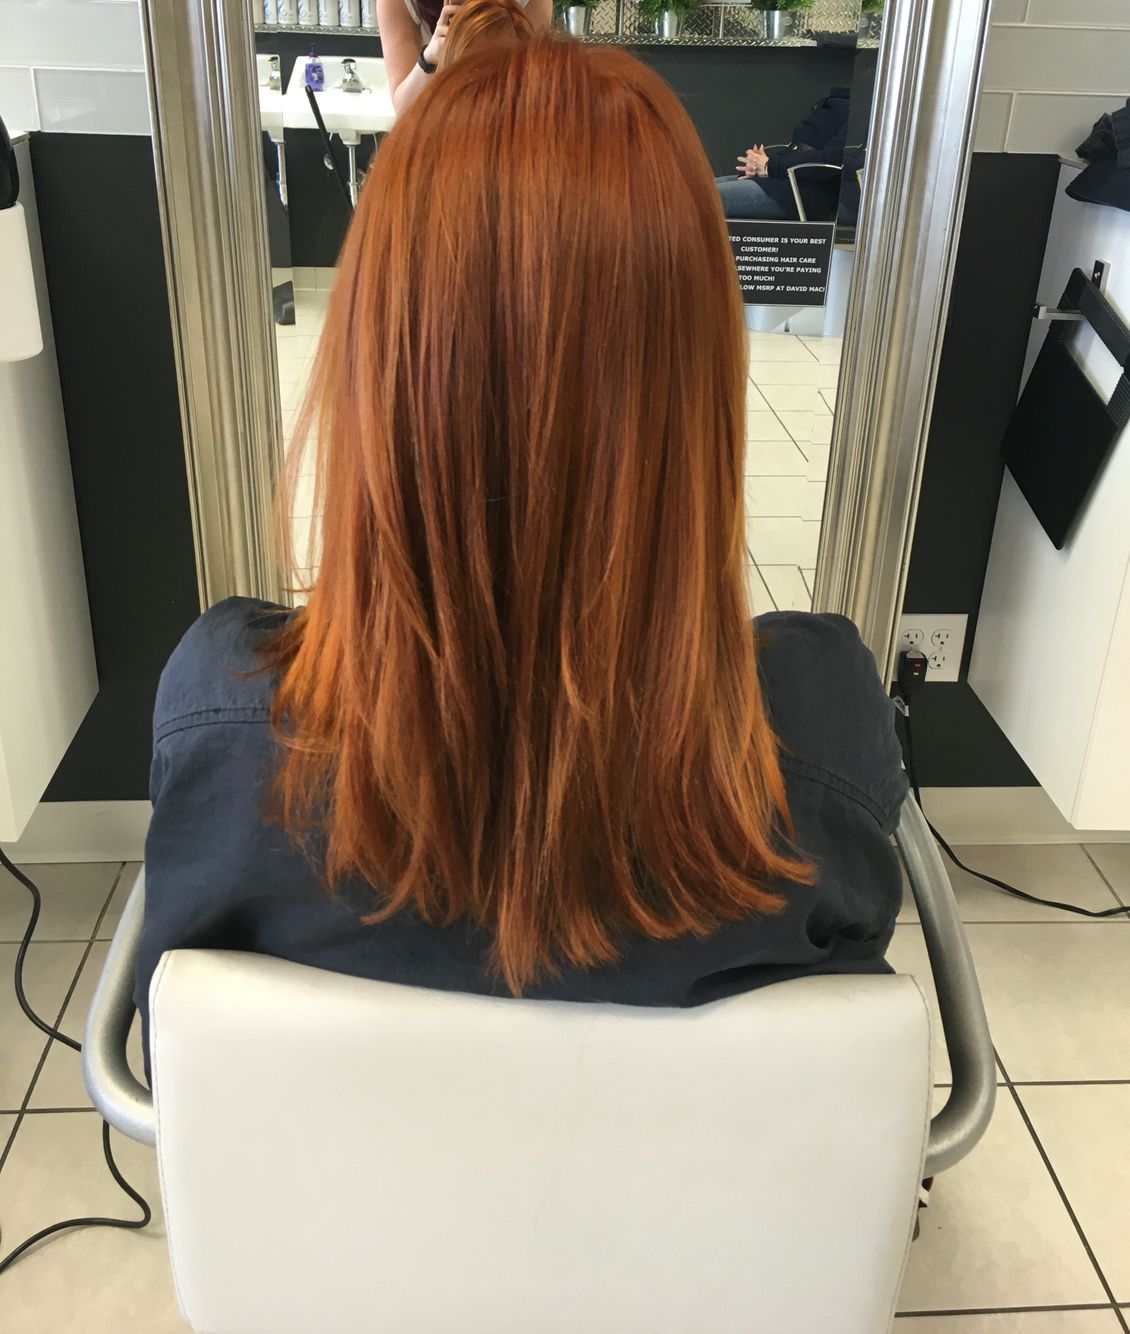 Great Gold Red Hair Color Using Wella 7 34 6 34 7 4 20 Volume Glazed With Wella Relights 34 13 Vo Wella Hair Color Hair Color Auburn Hair Color Formulas